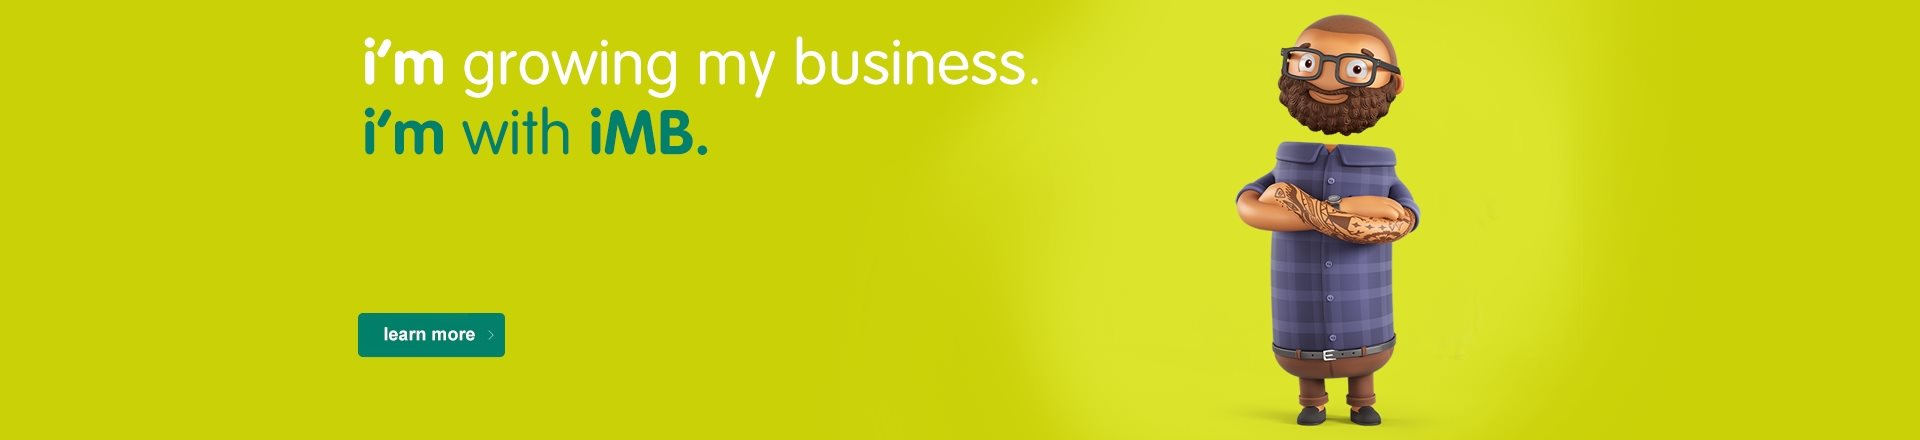 IMB | Business Banking